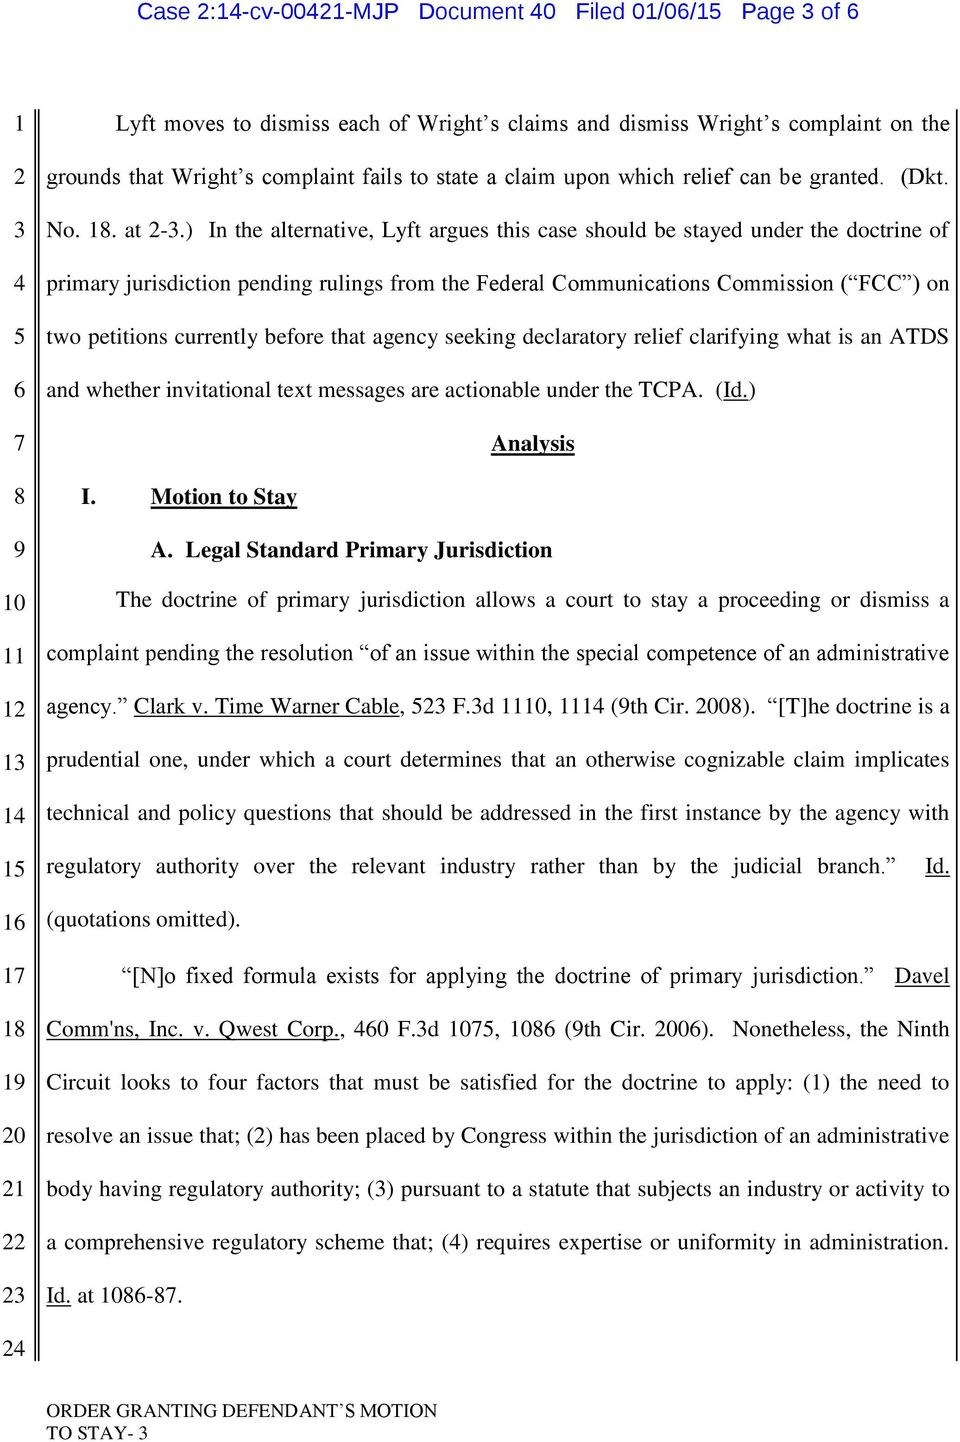 ) In the alternative, Lyft argues this case should be stayed under the doctrine of primary jurisdiction pending rulings from the Federal Communications Commission ( FCC ) on two petitions currently